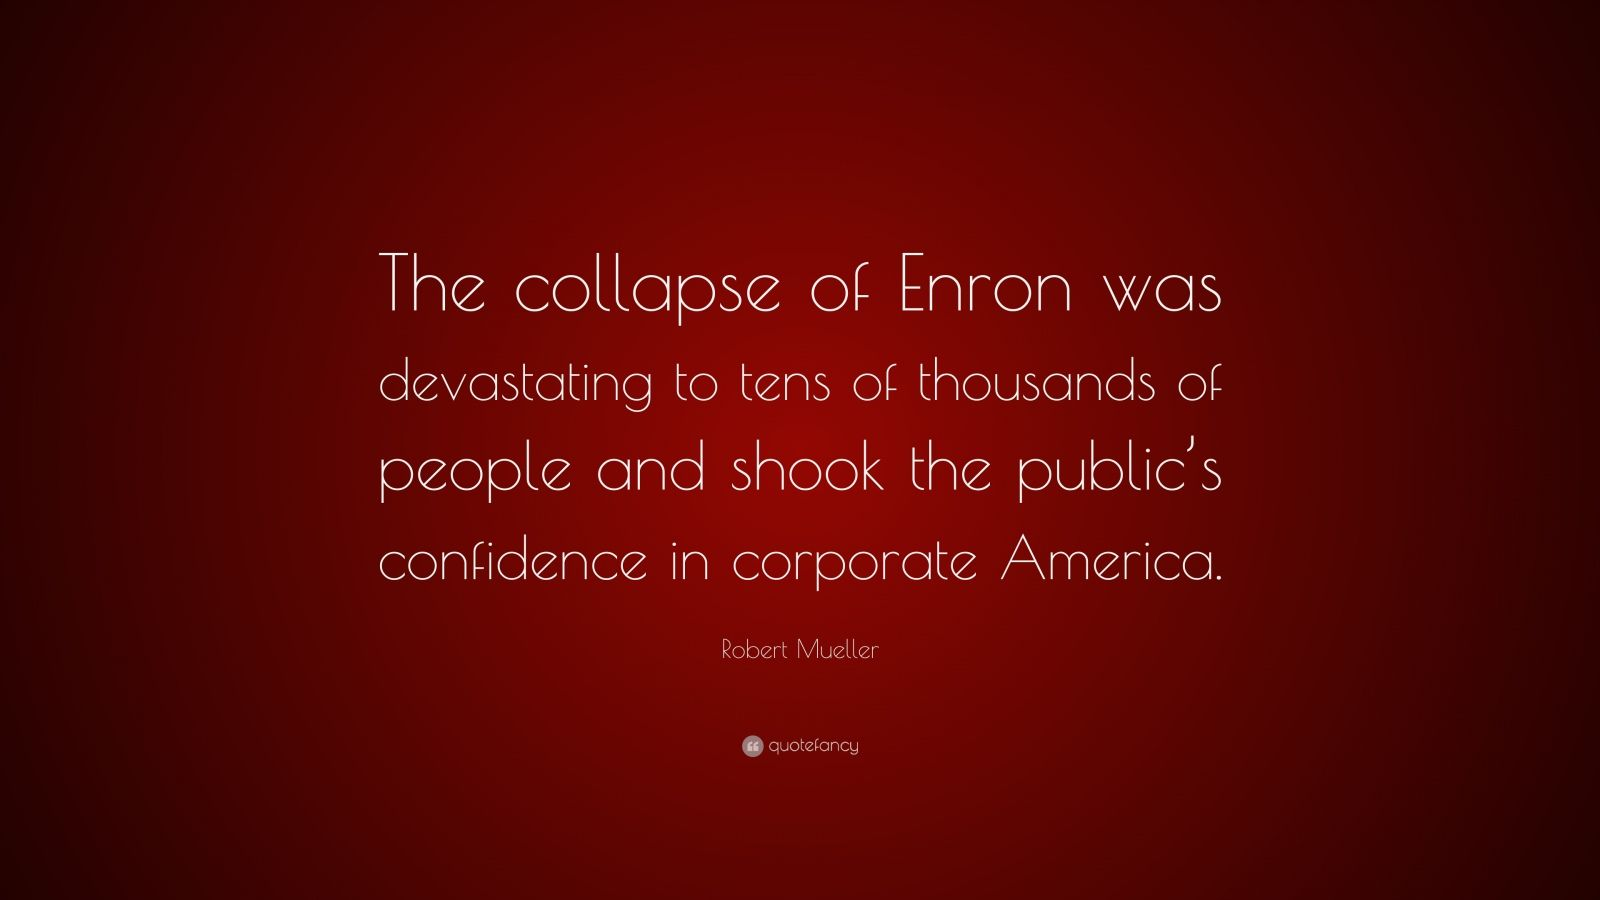 enron crisis of confidence Daniels fund ethics initiative university of new mexico confidence crisis high-profile bankruptcies of clients such as enron and.